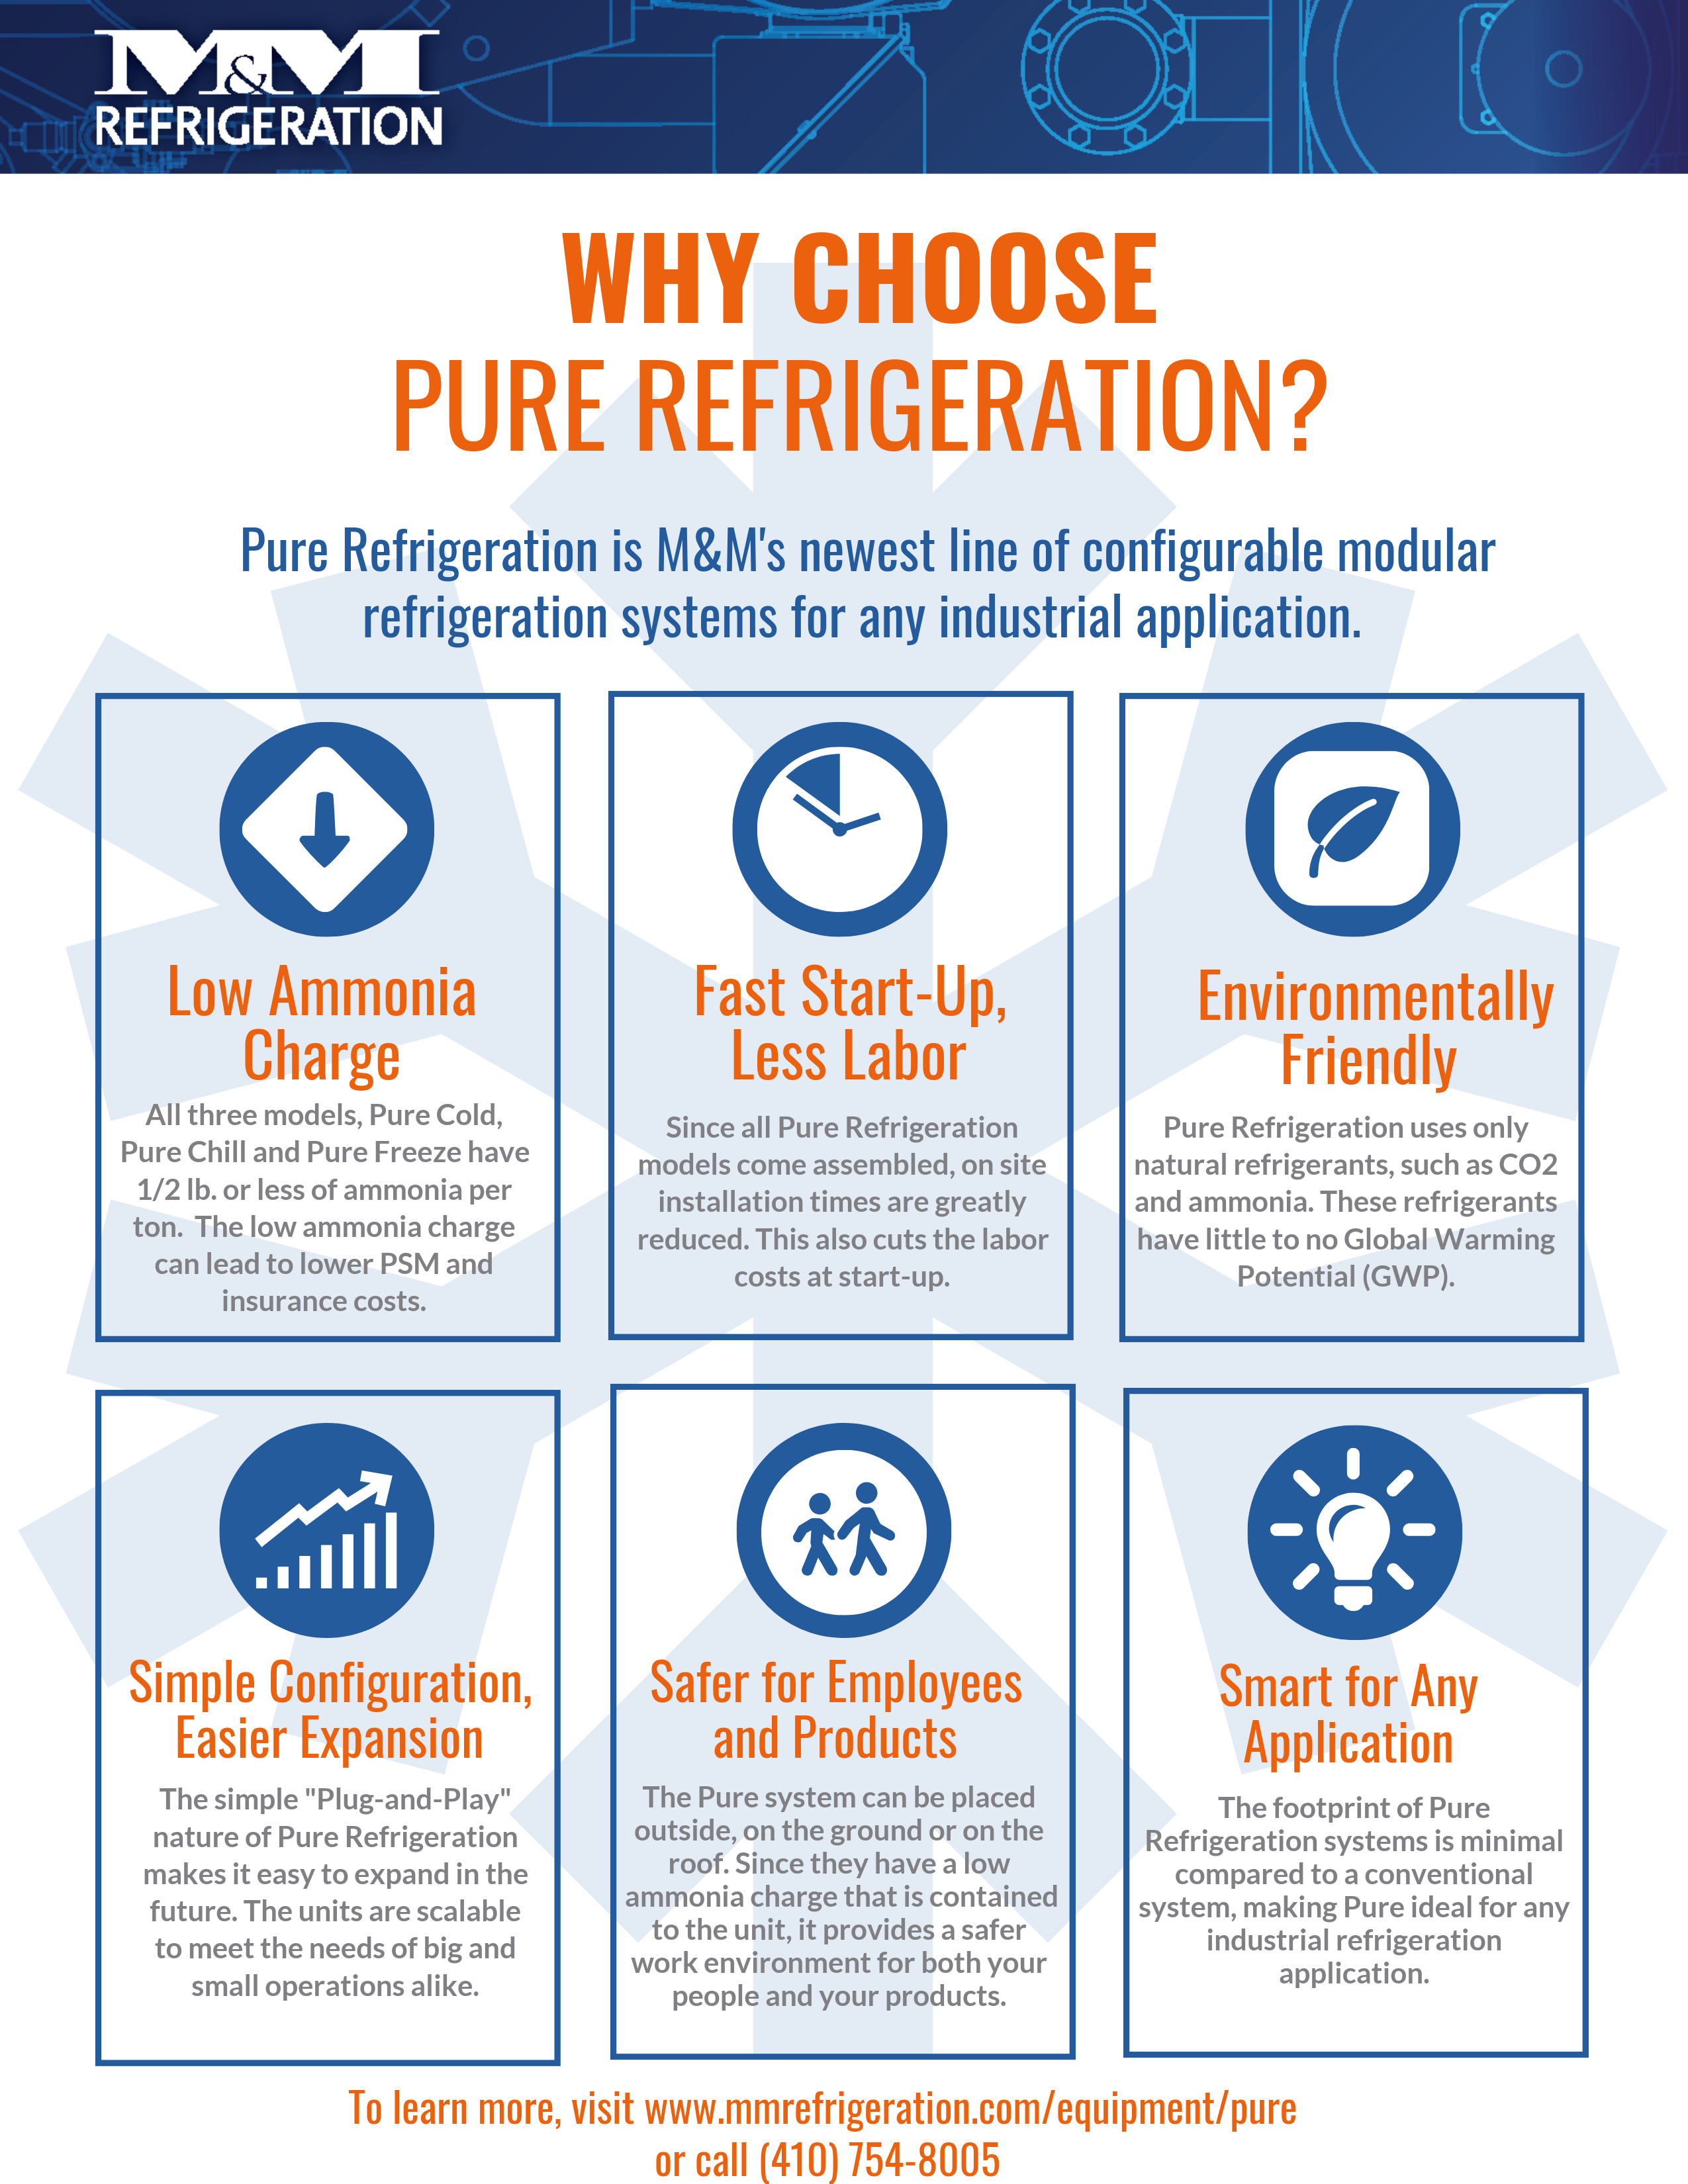 Infographic: Why Choose Pure Refrigeration? - M&M Refrigeration